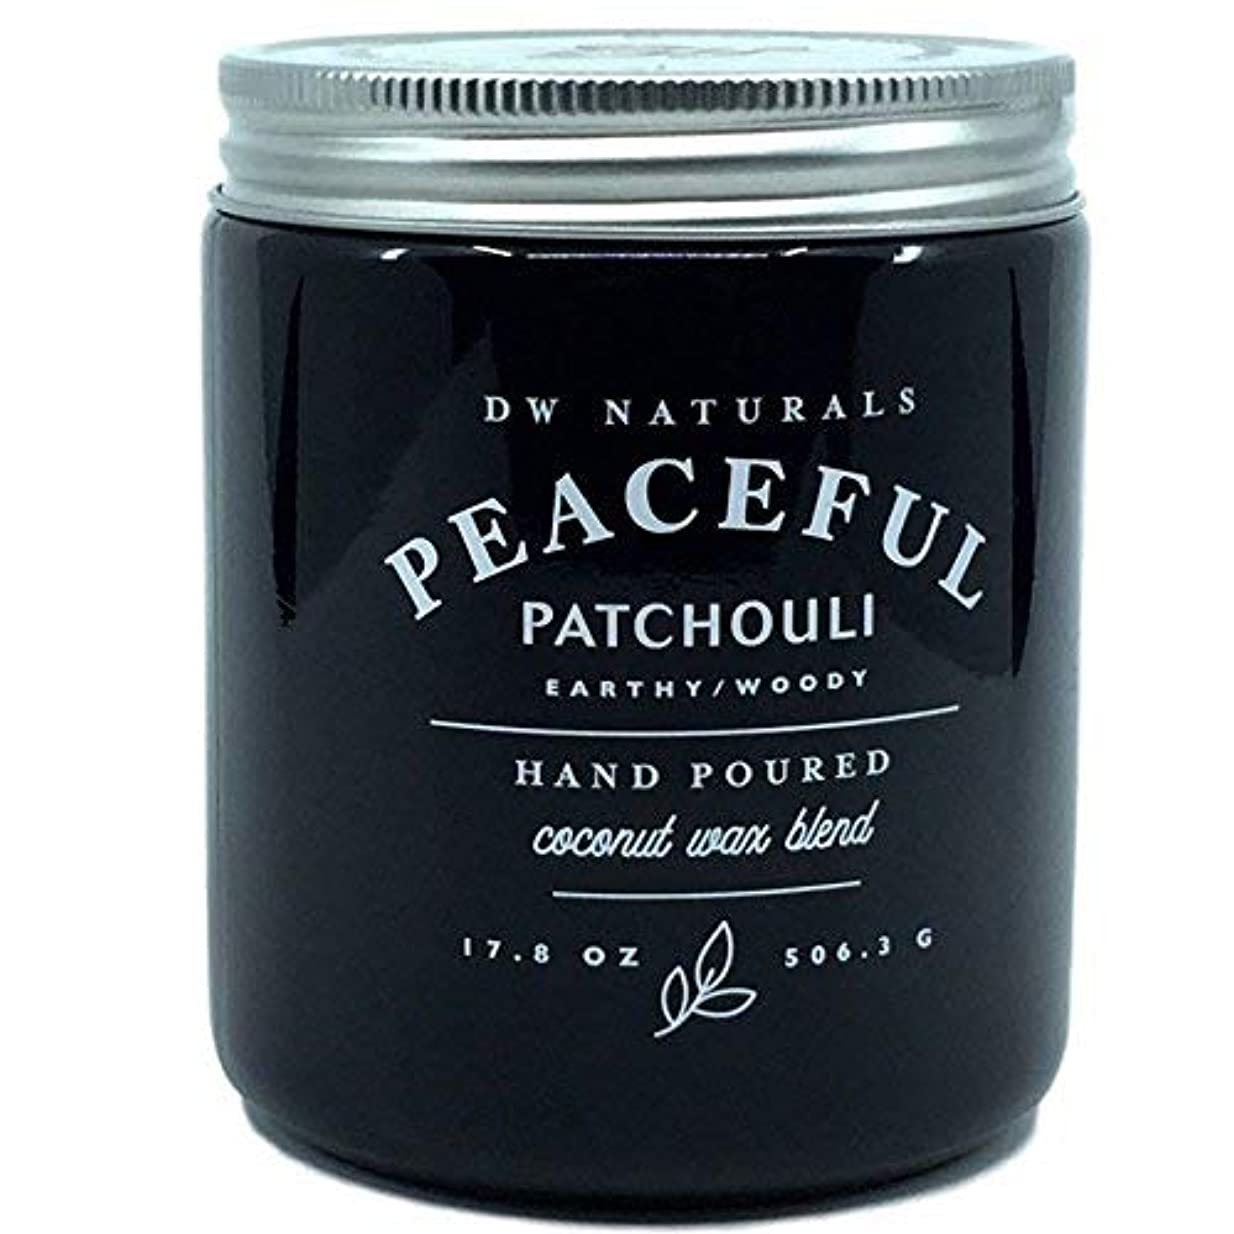 規制リーフレット短命DW Naturals Peaceful Patchouli Earthy Woody Hand Poured Coconut Wax Blend Candle 17.8 Oz [並行輸入品]